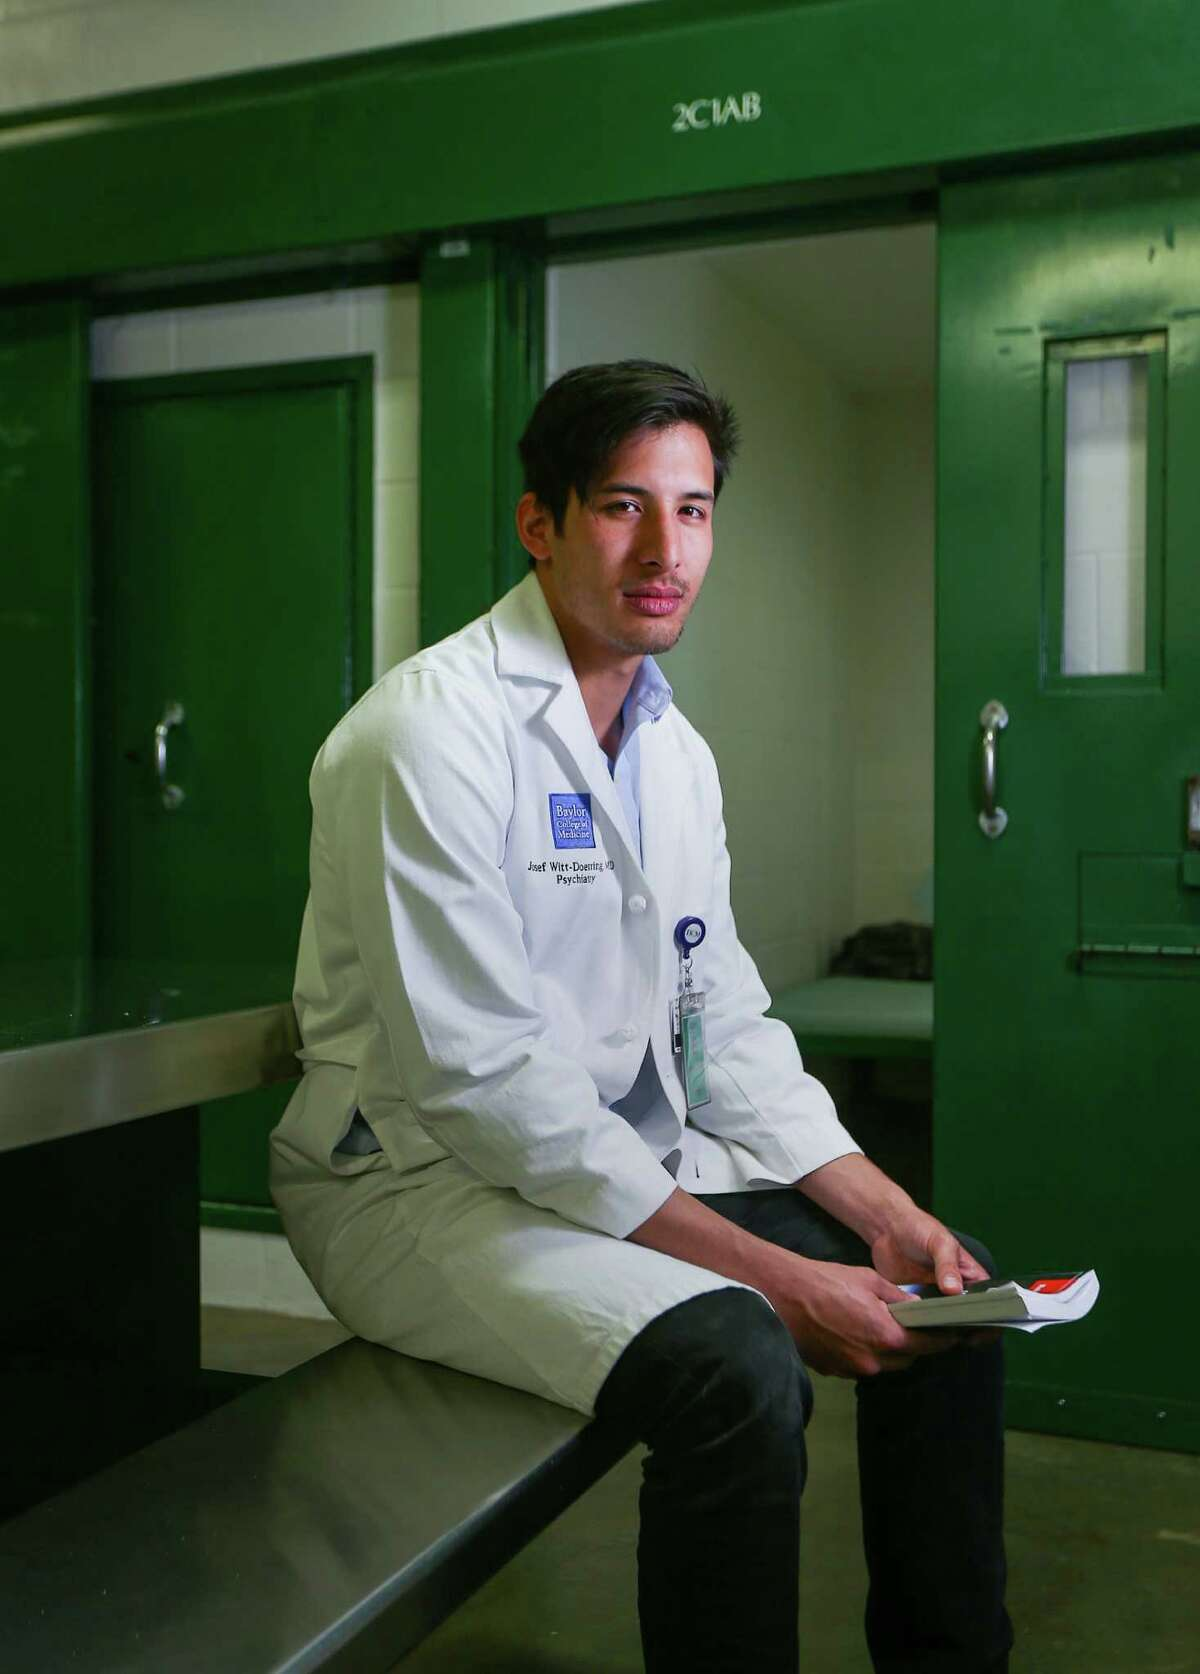 Dr. Josef Witt-Doerring poses for a portrait in the mental health unit at the Harris County Jail, Friday, Sept. 30, 2016, in Houston. Witt-Doerring is a second-year psychiatry resident. ( Jon Shapley / Houston Chronicle )